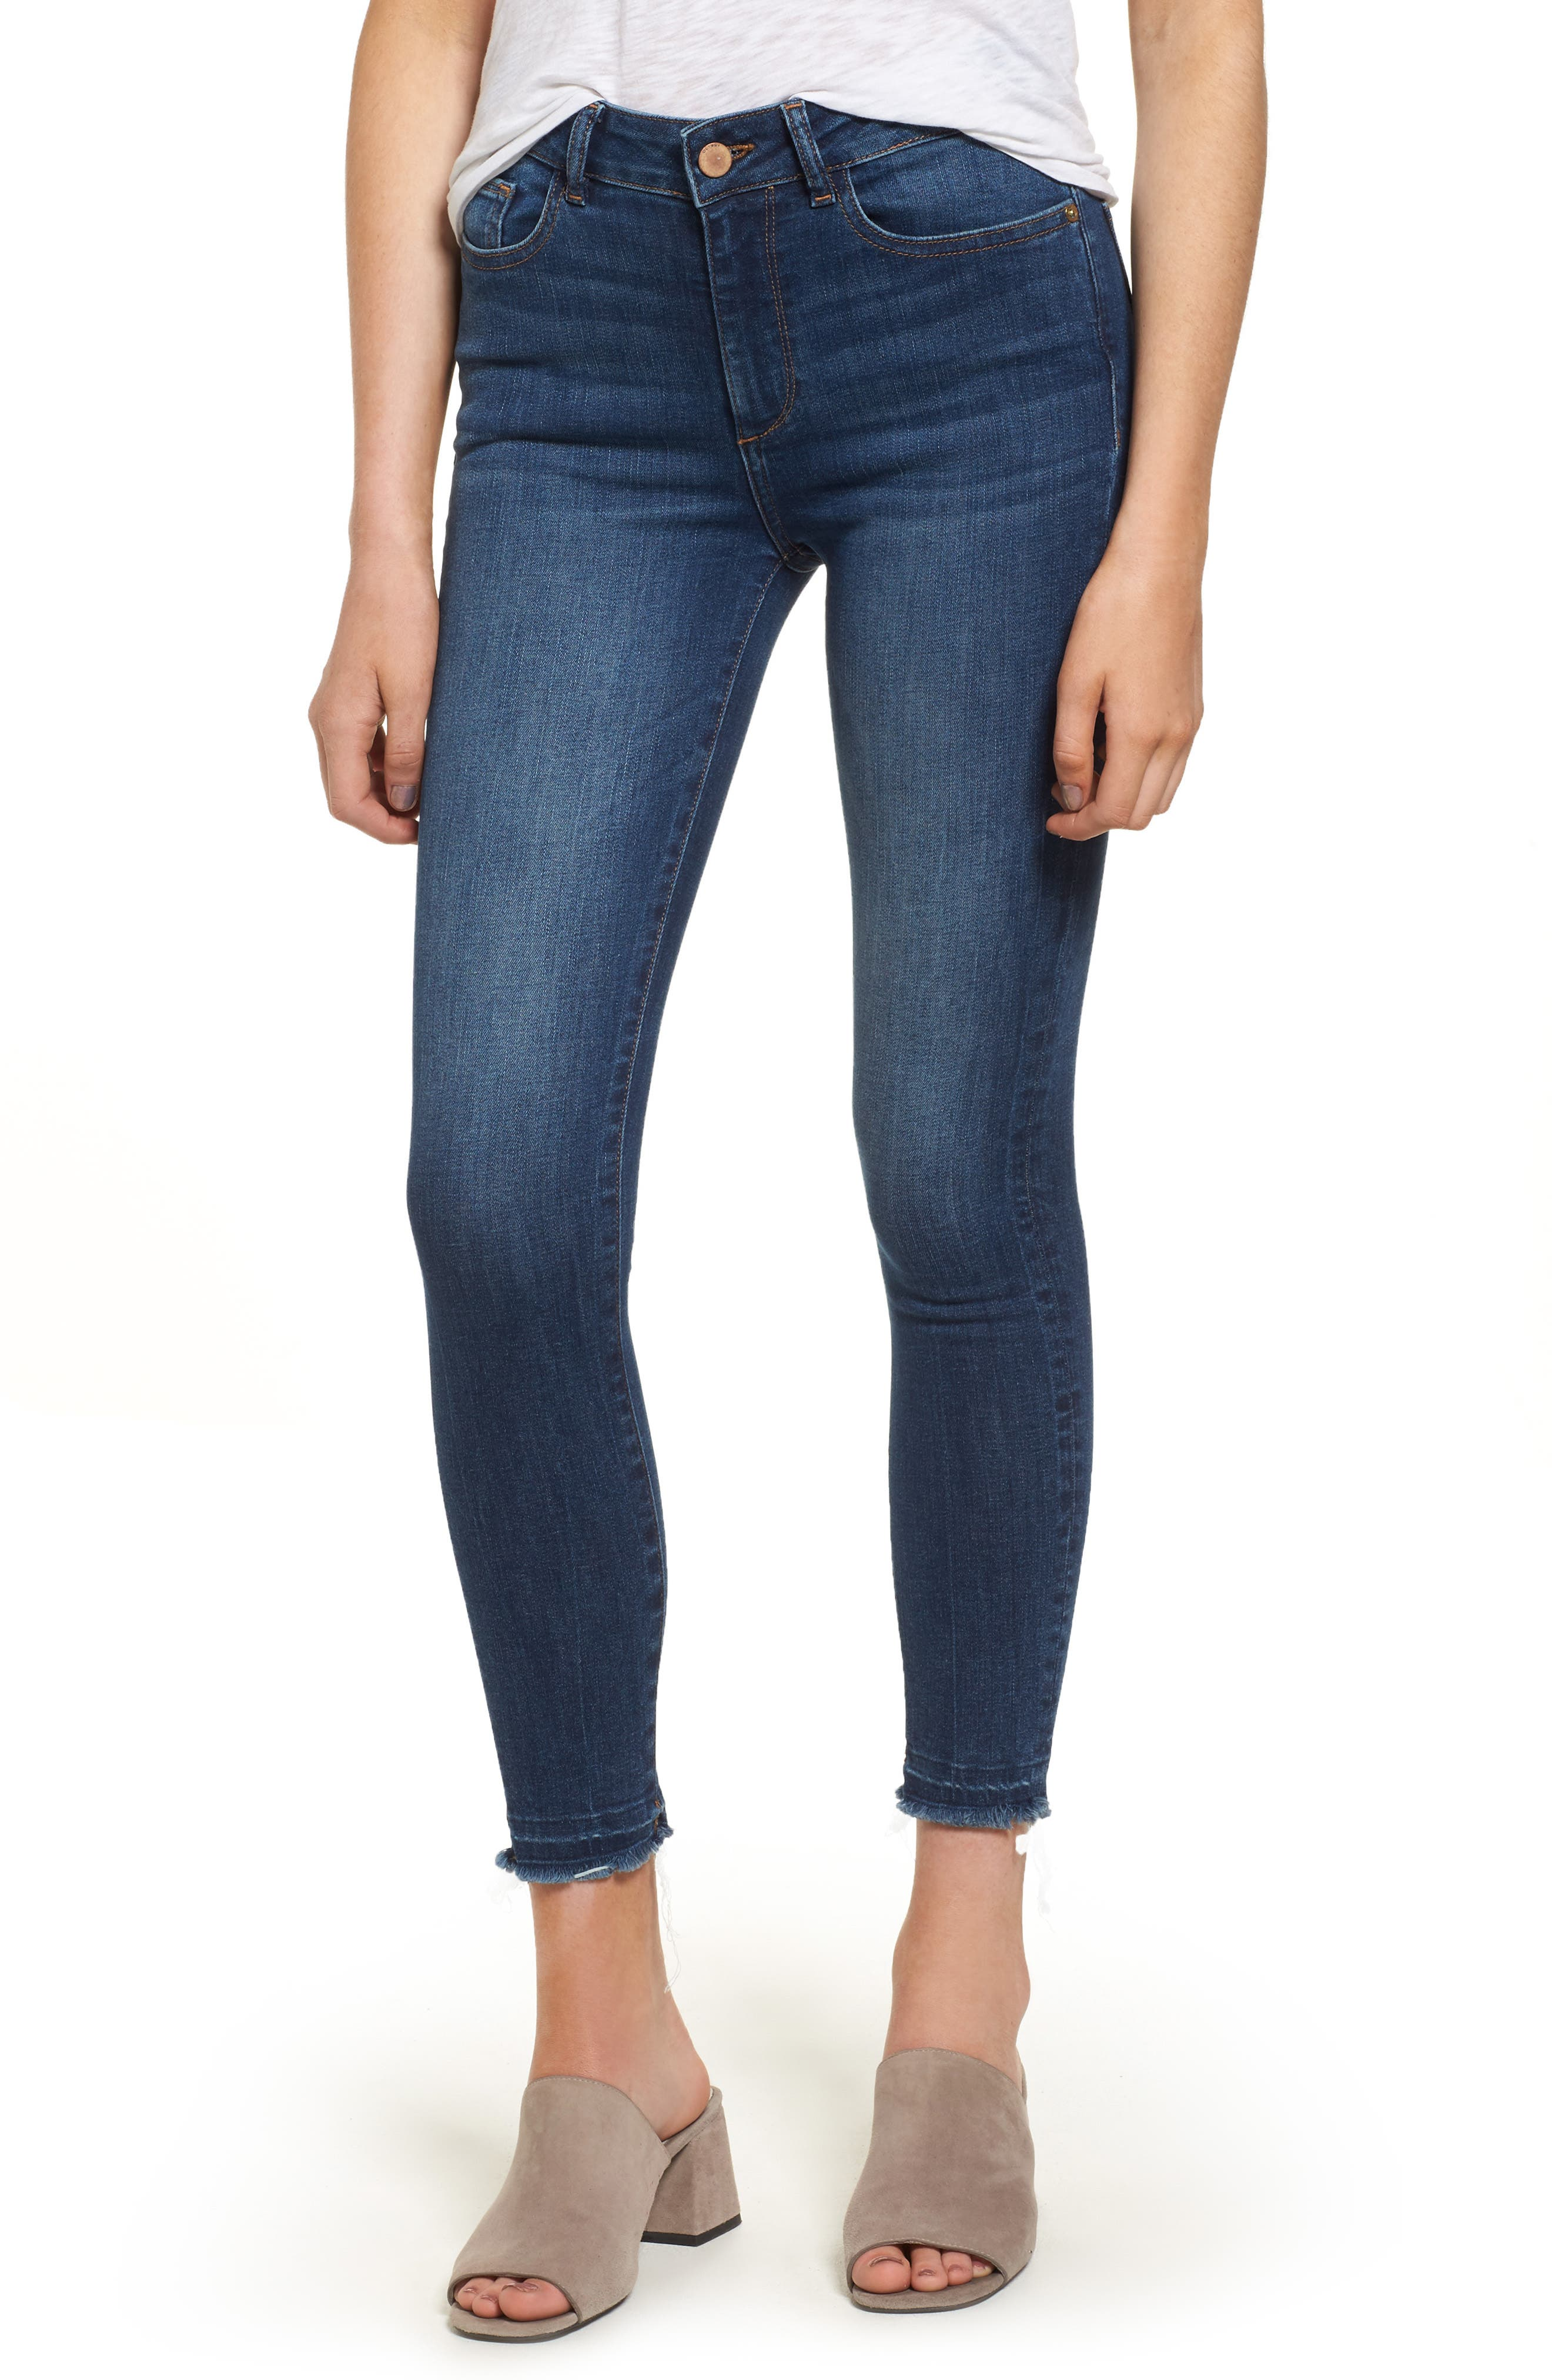 DL1961 Ryan High Waist Petite Skinny Jeans (Incognito)